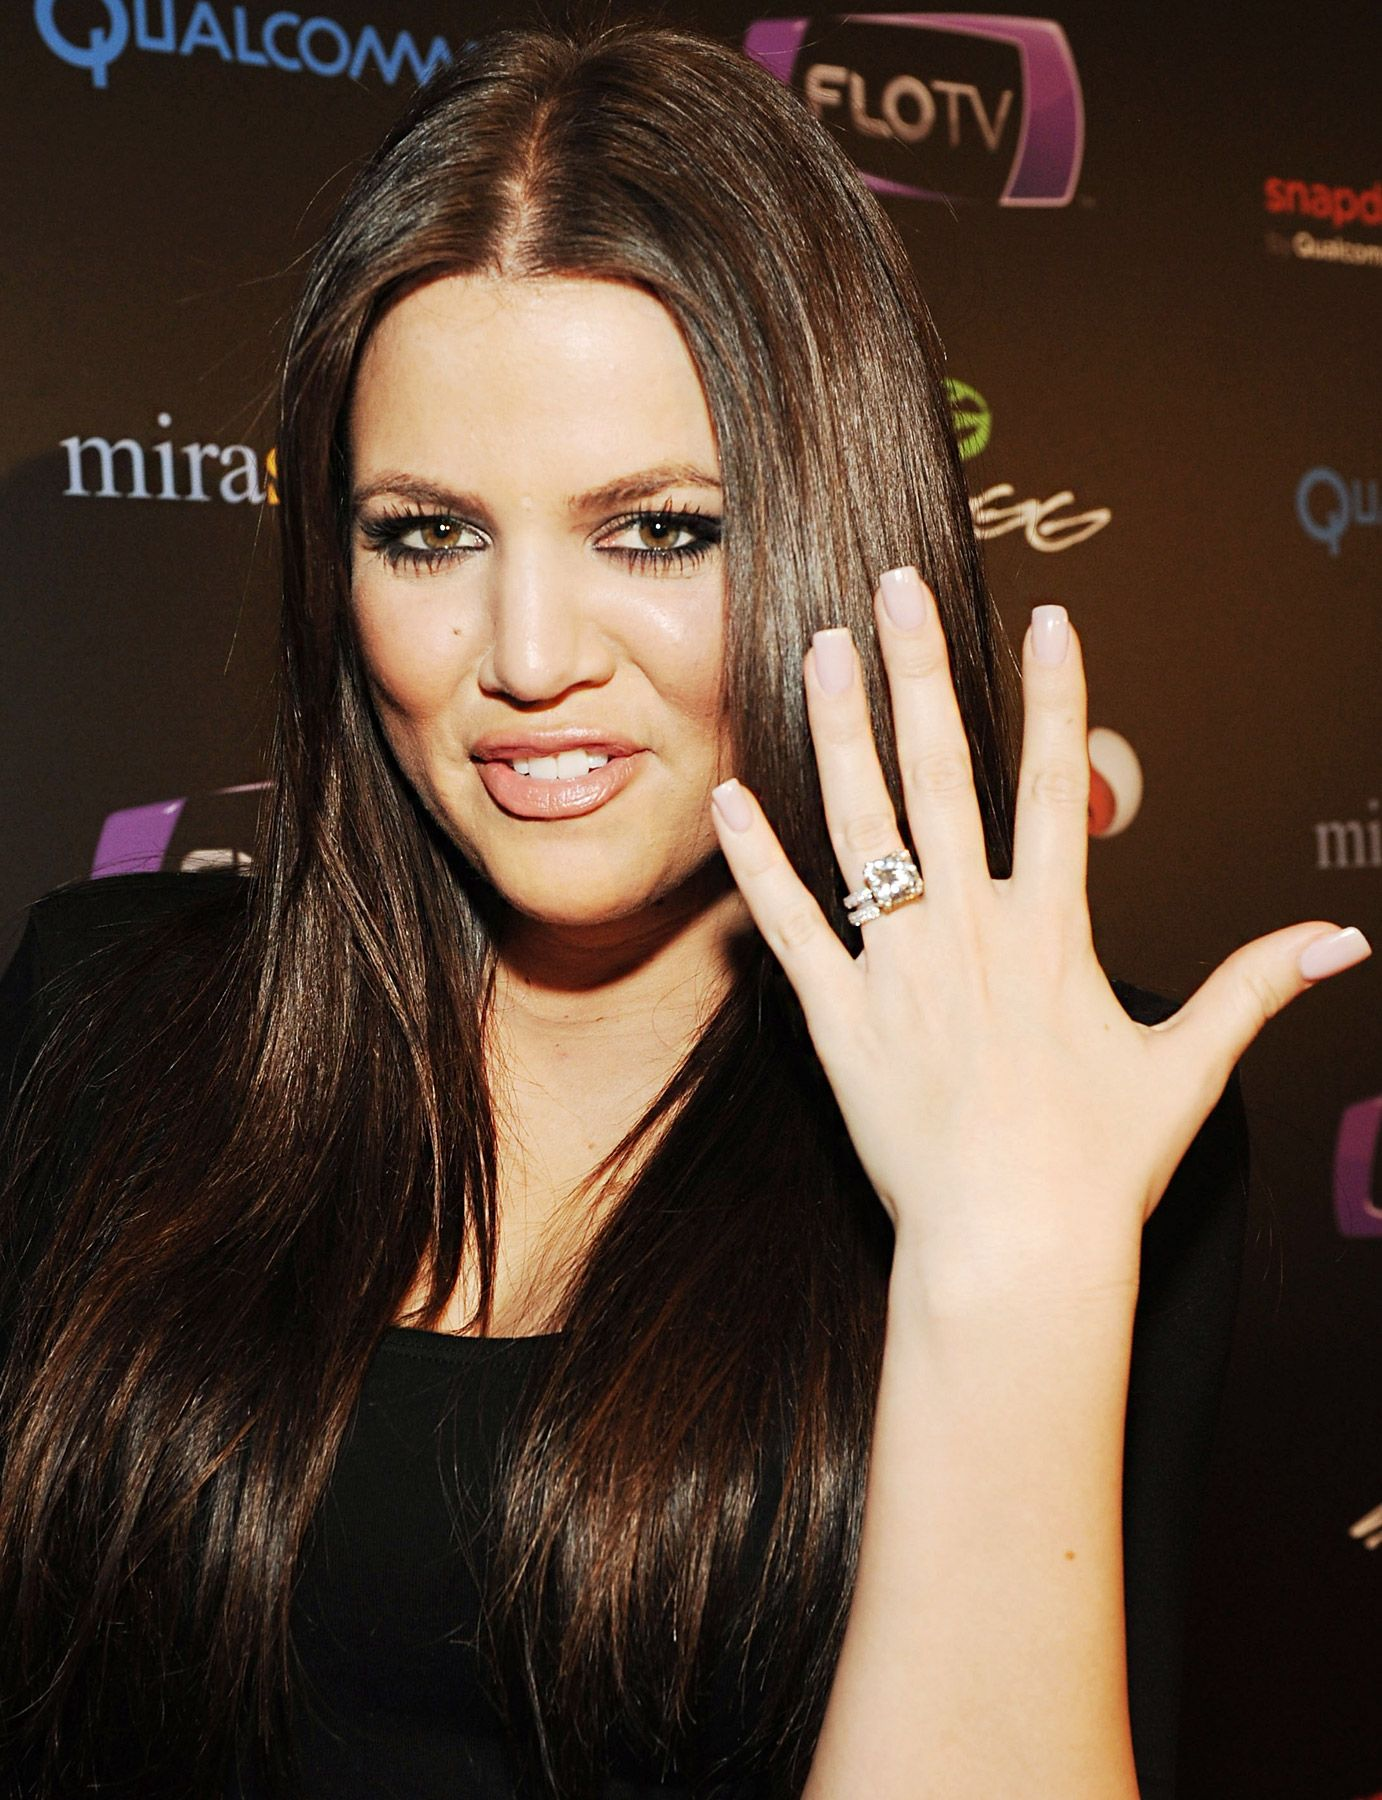 Pictures Of Celebrities Best Celebrity Engagement Rings All Time Khloe